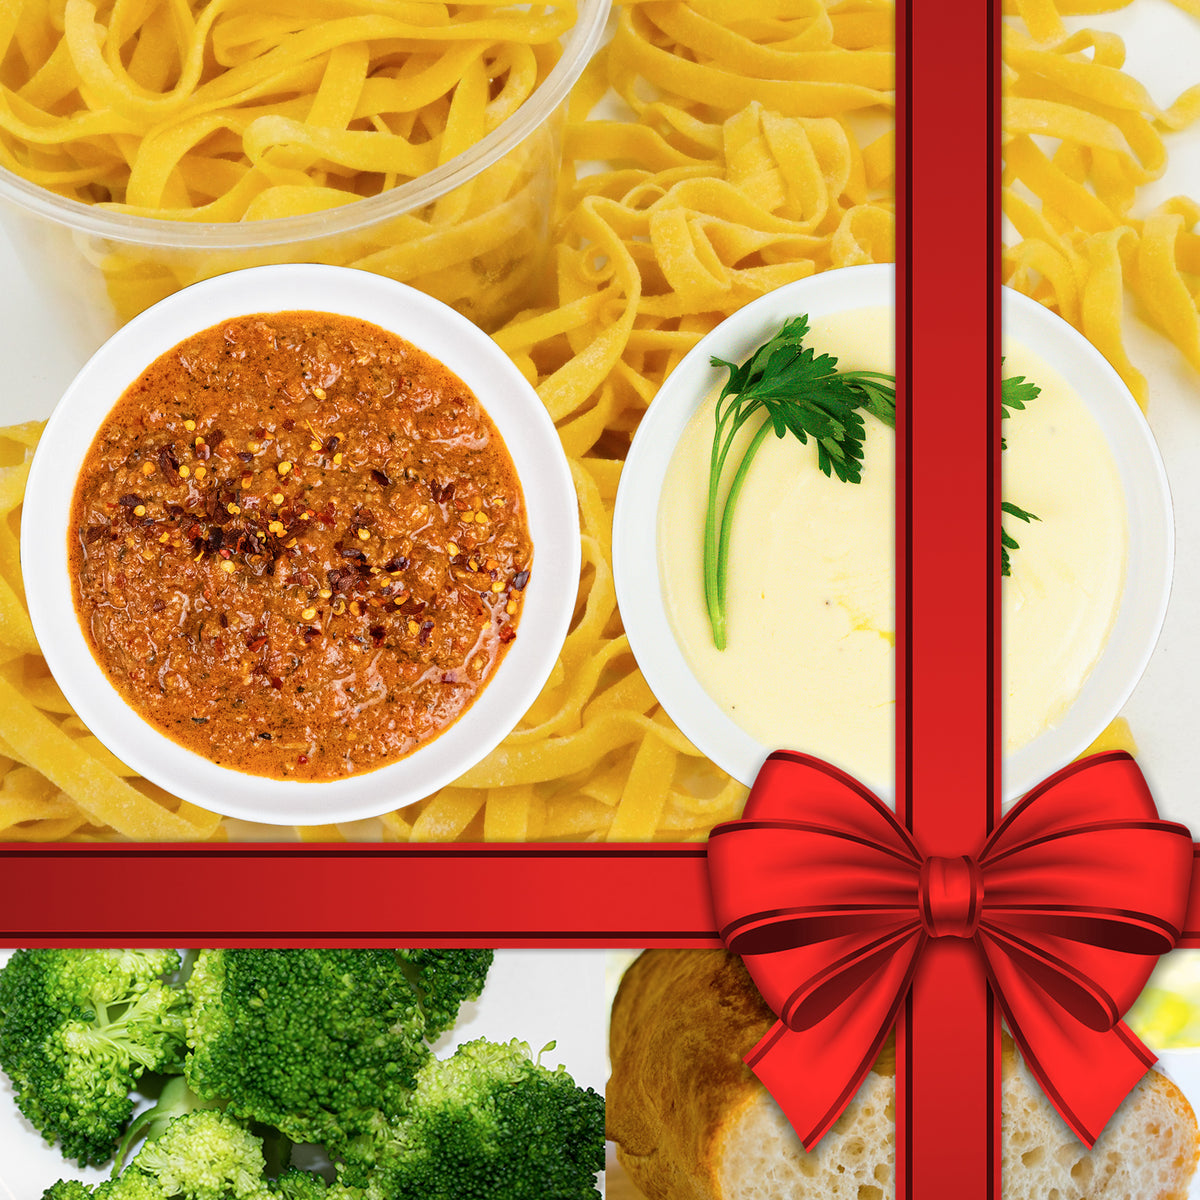 Gift Meal Kit For 2 Featuring Bolognese and Alfredo